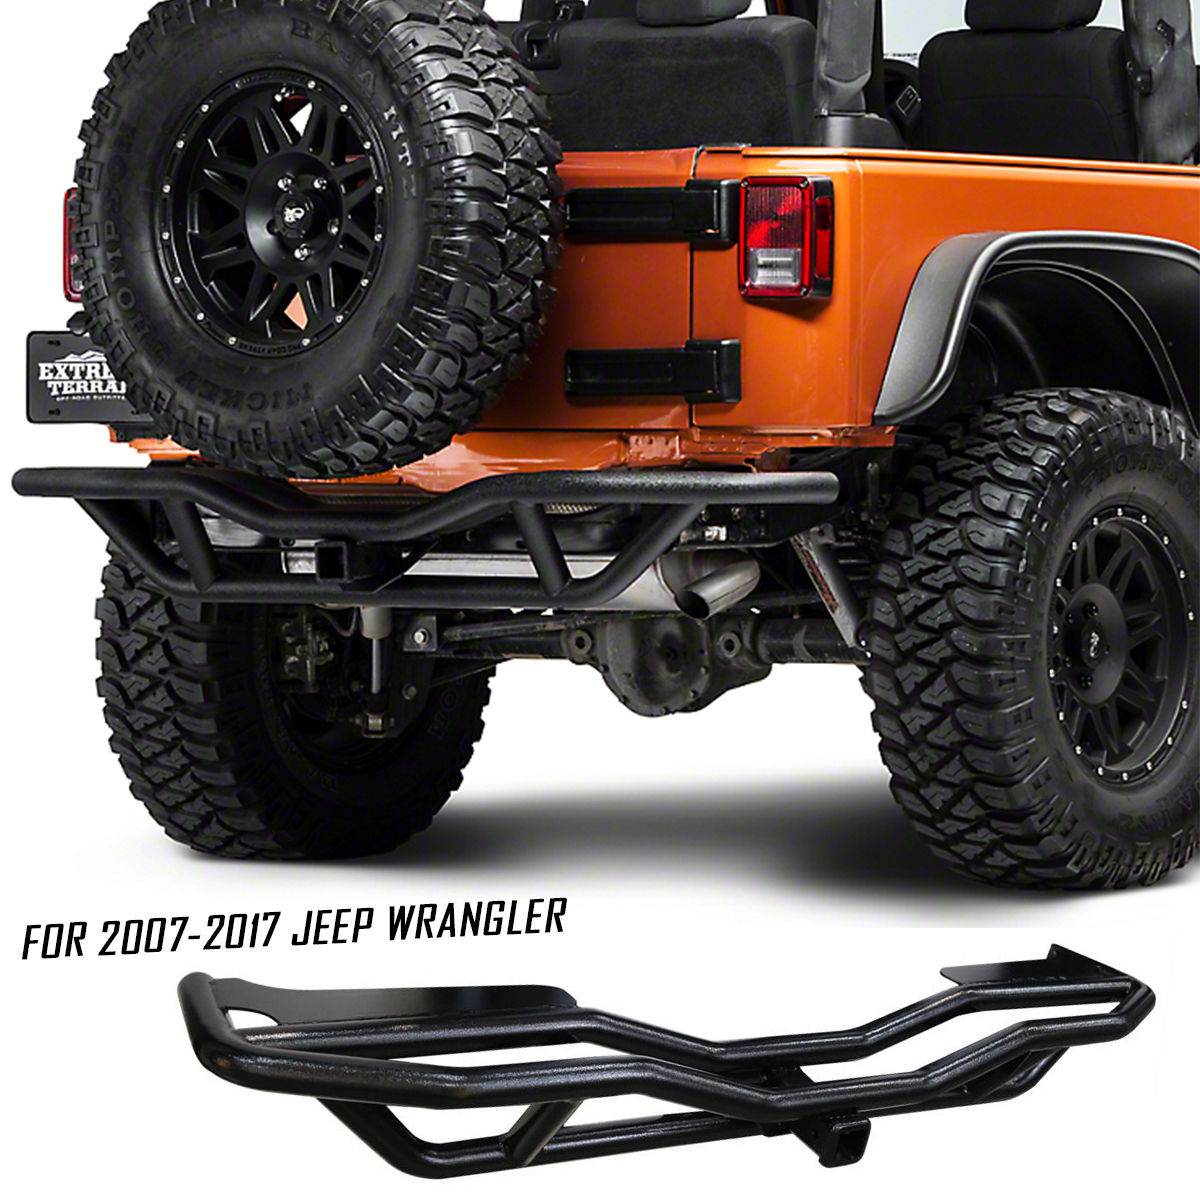 Jeep Wrangler JK Off Road Front /& Rear Tubular Guards Textured Black Rock Crawler for 2007 2008 2009 2010 2011 2012 2013 2014 2015 2016 2017 2018 Jeep JK Wrangler Unlimited 4 Door Set